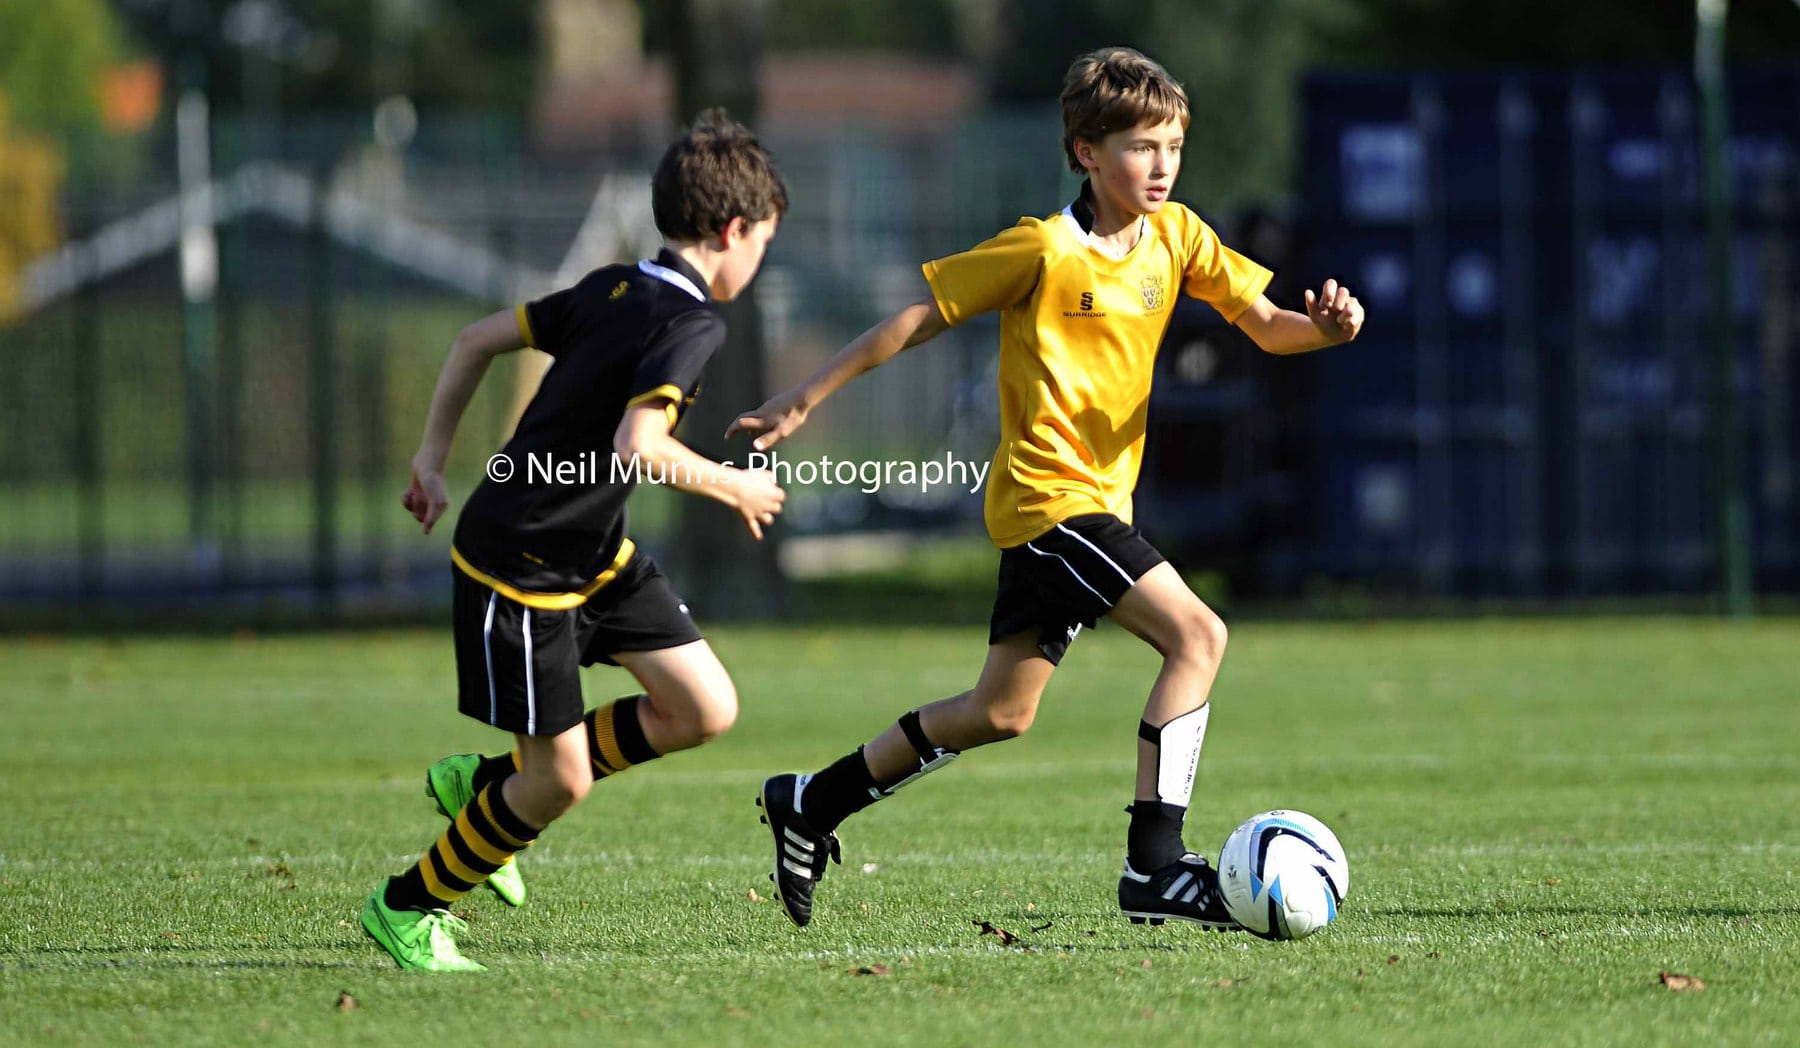 School sports photography - ©Neil Munns Photography